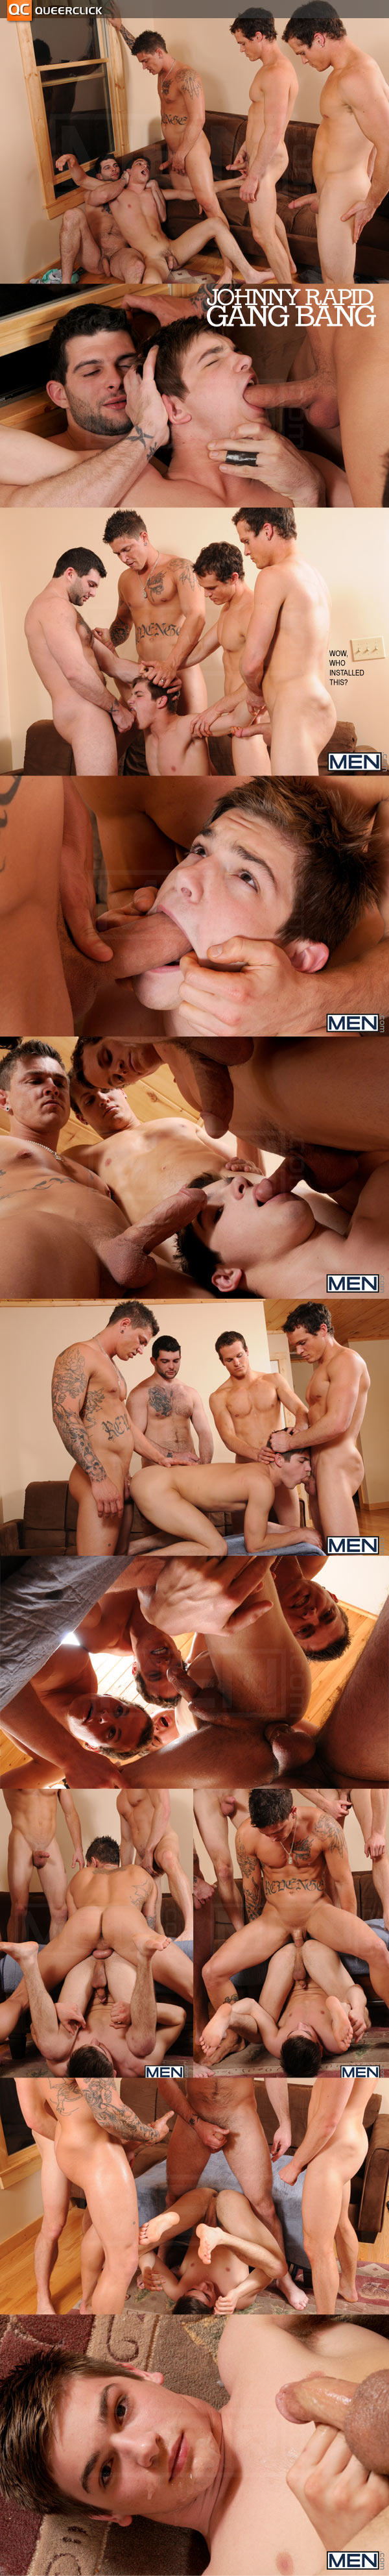 Men.com's Johnny Rapid Gang Bang